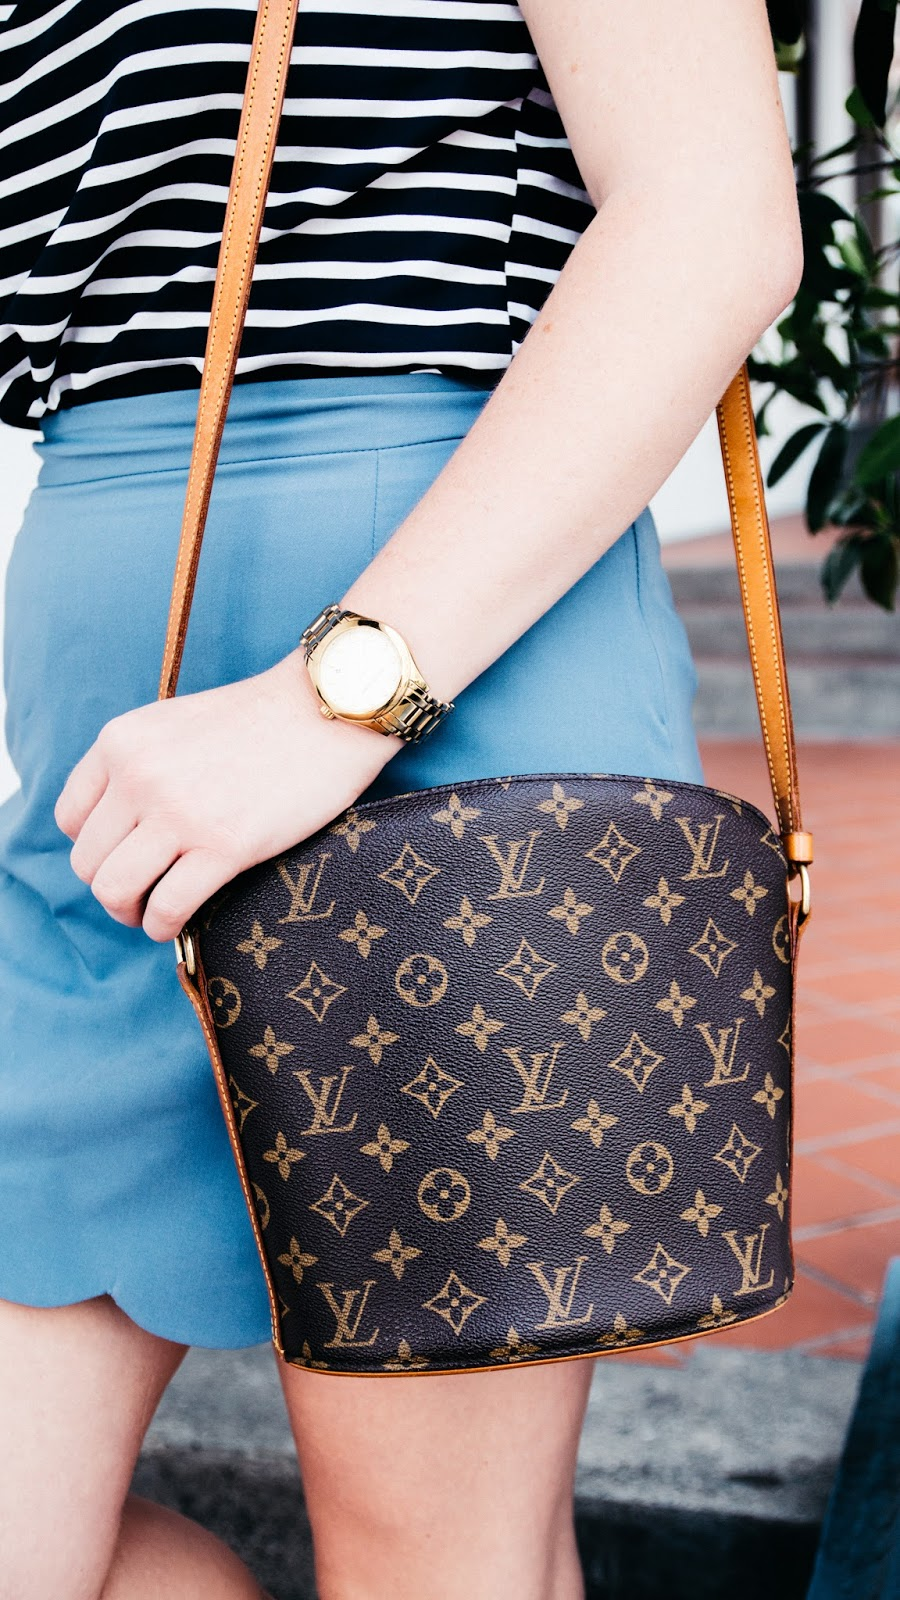 Louis Vuitton Purse | Global Fashion Gal